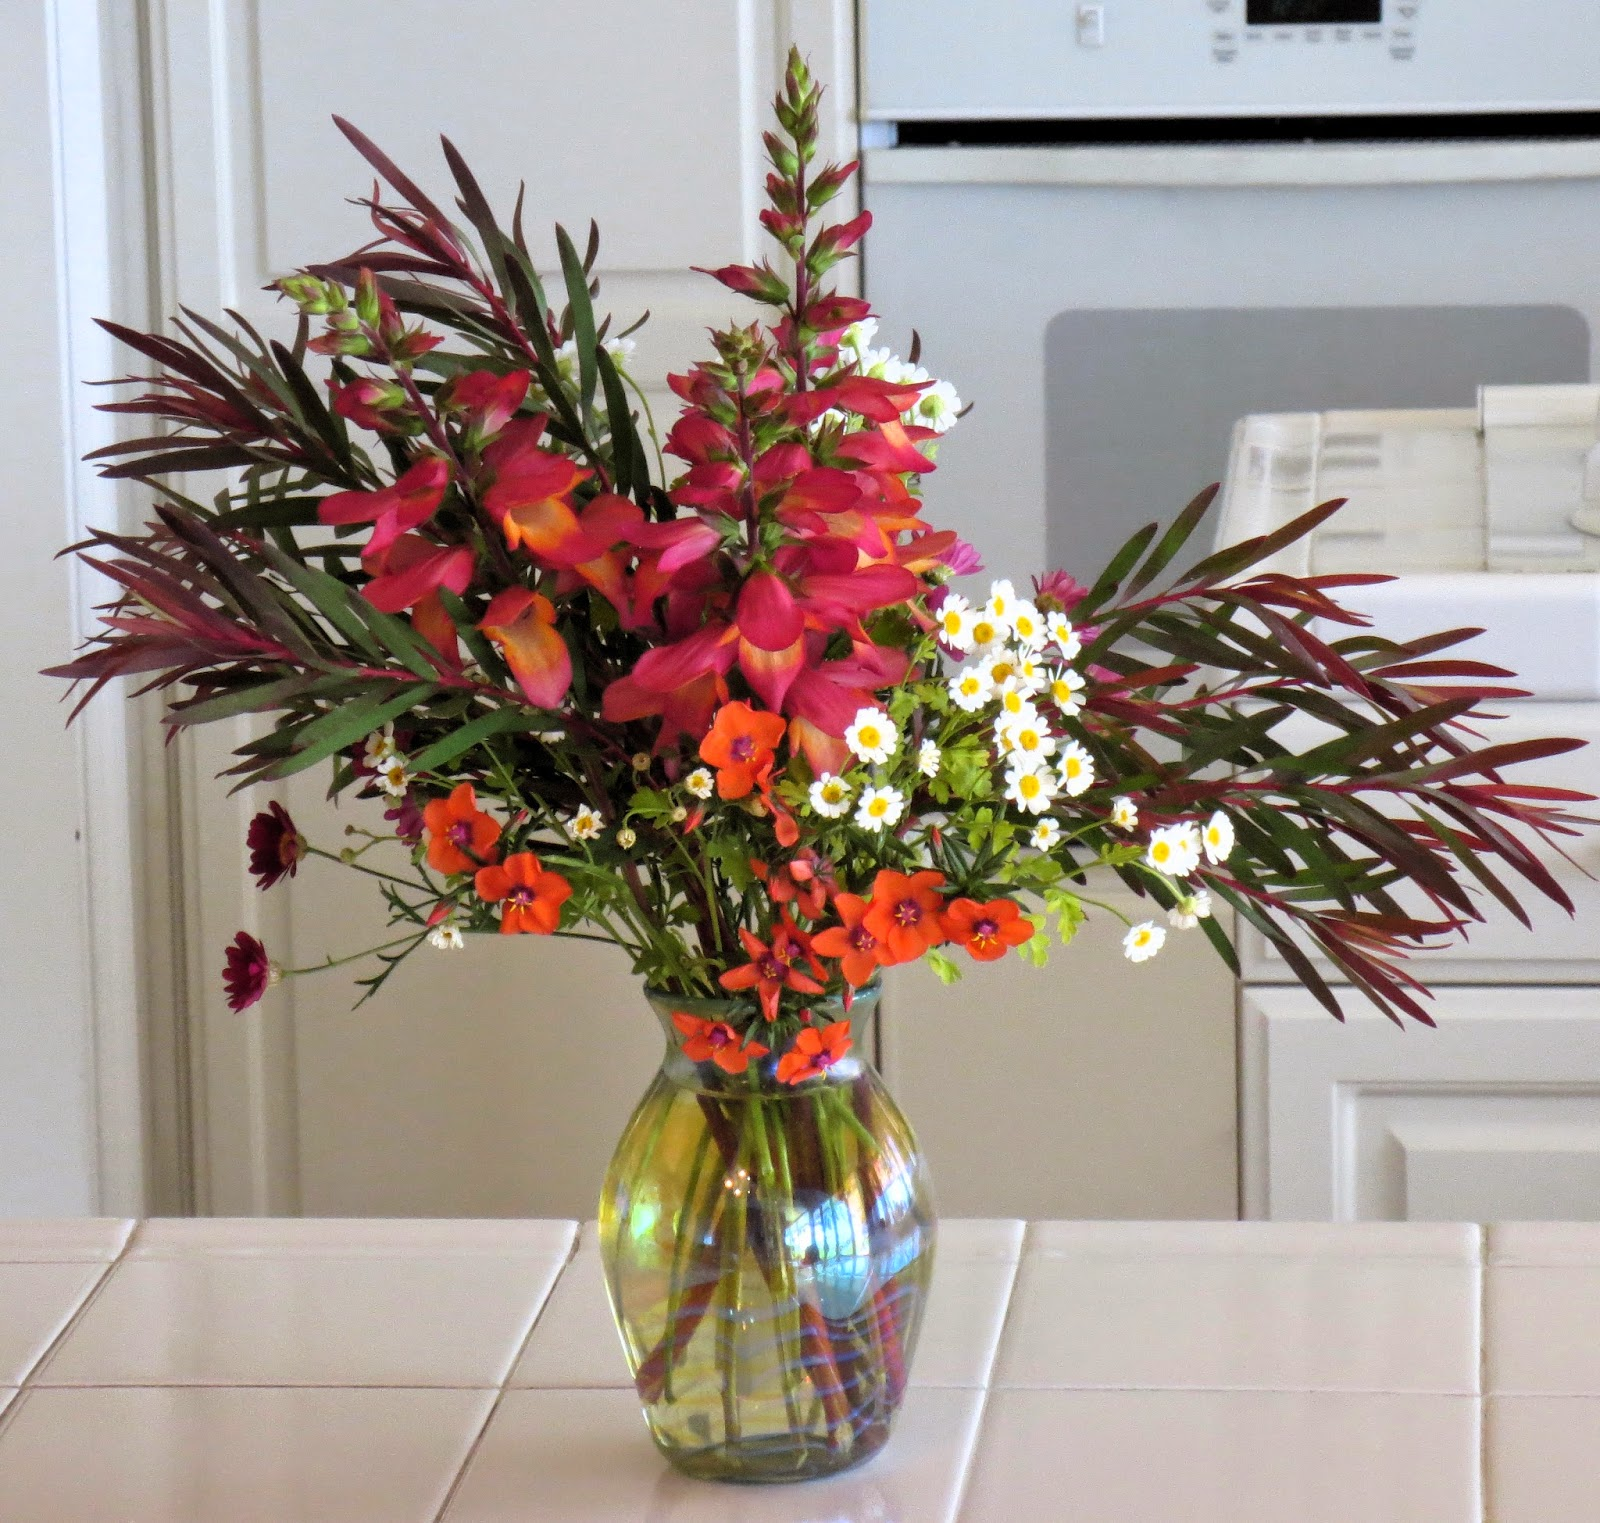 Late to the Garden Party: In a Vase on Monday: A Lopsided Arrangement